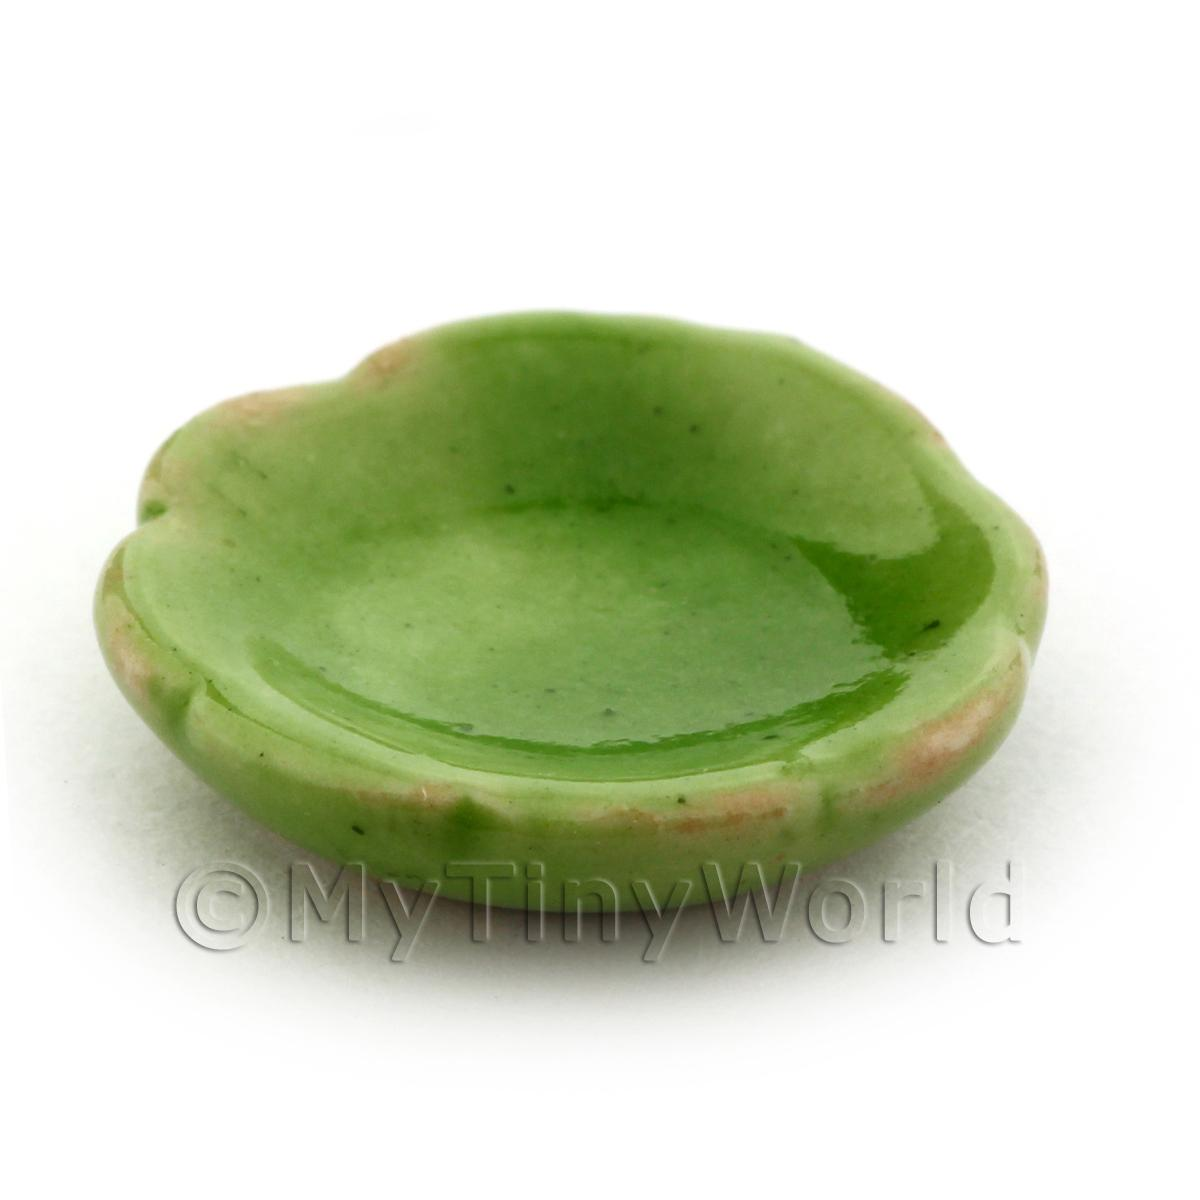 16mm Dolls House Miniature Green Scalloped Edged Plate